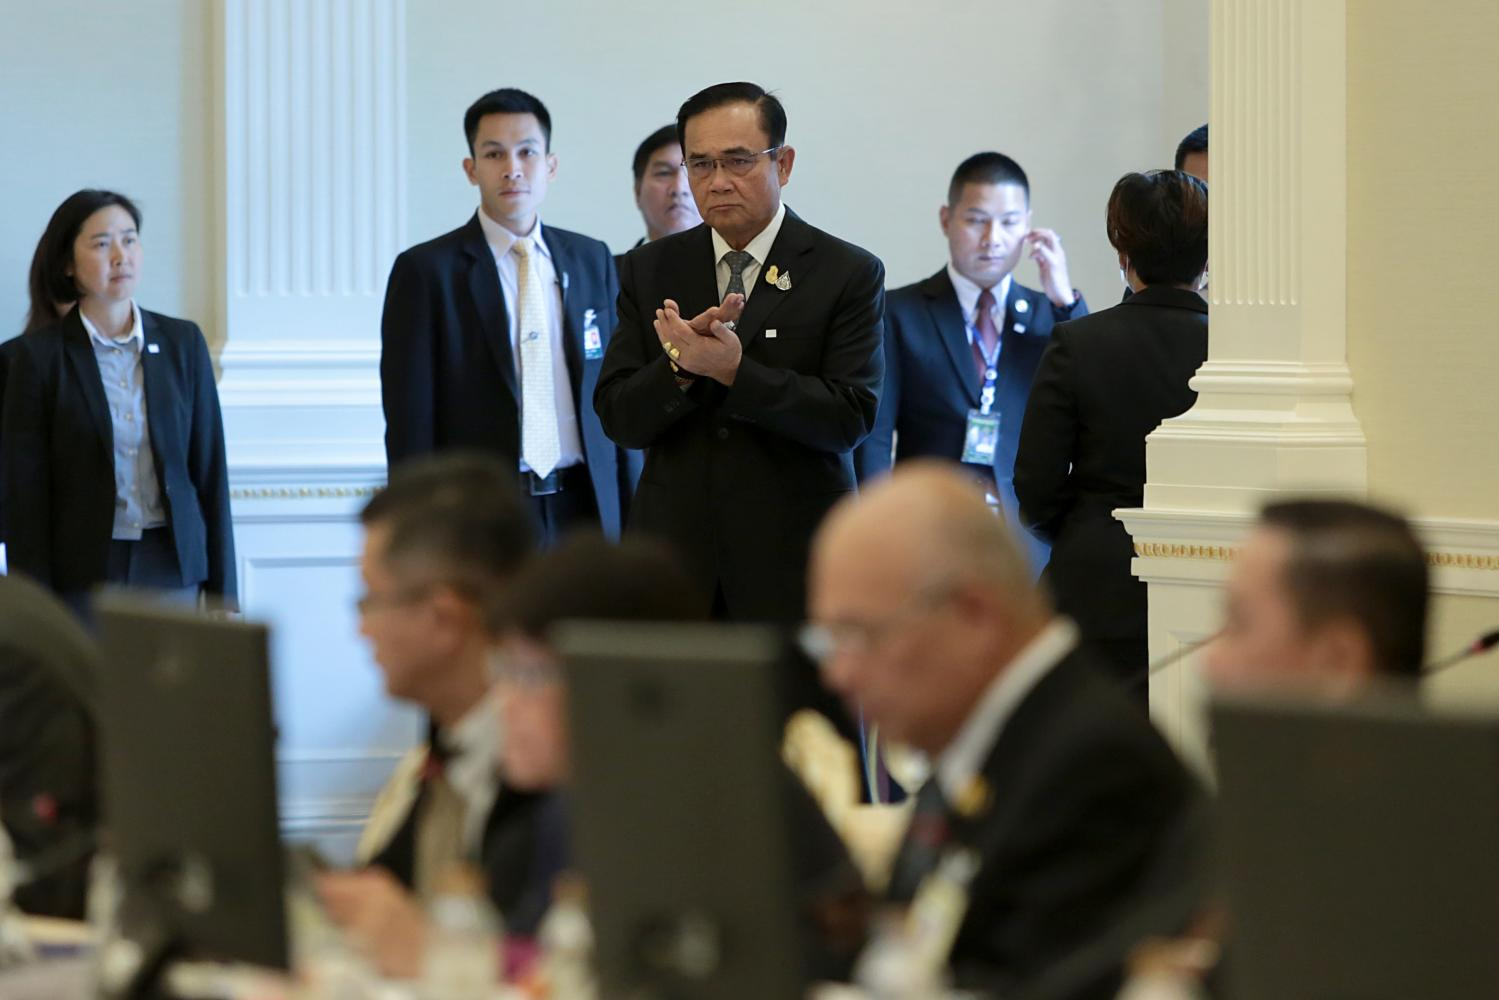 Prime Minister Prayut Chan-o-cha presides over a government meeting on the Covid-19 outbreak at Government House on March 4. (Photo by Chanat Katanyu)